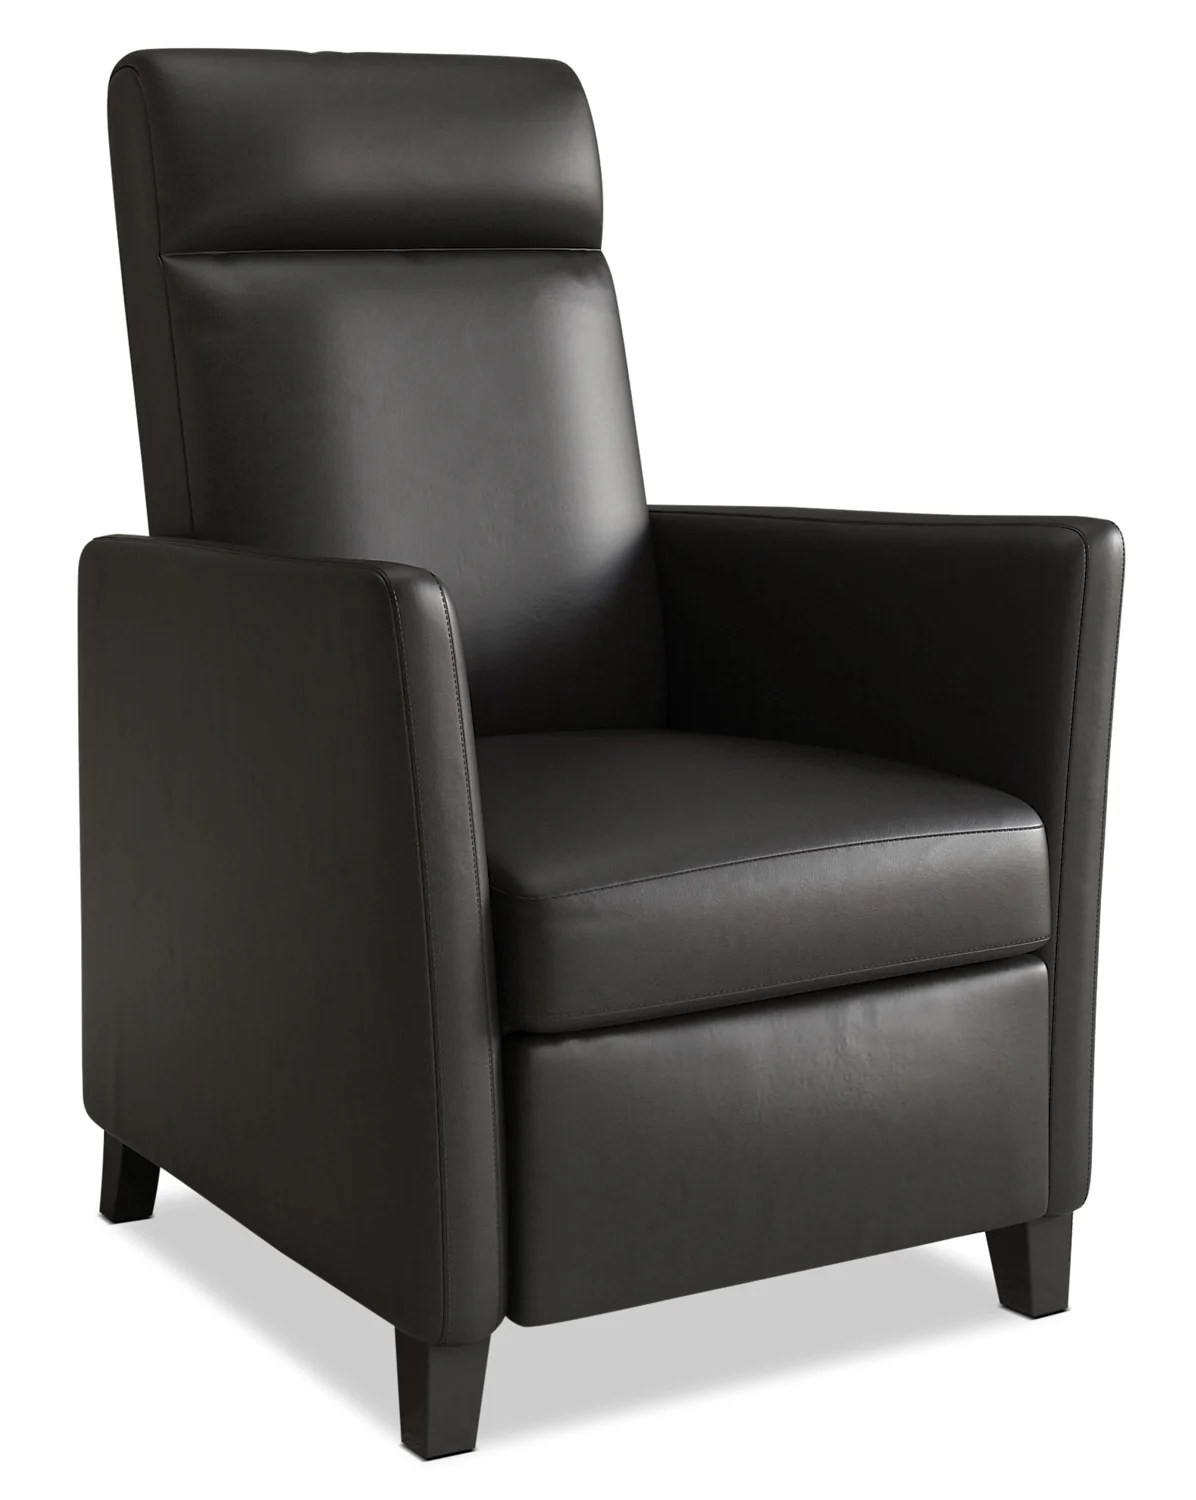 Modern Recliner Chair Zoe Bonded Leather Modern Accent Reclining Chair Black